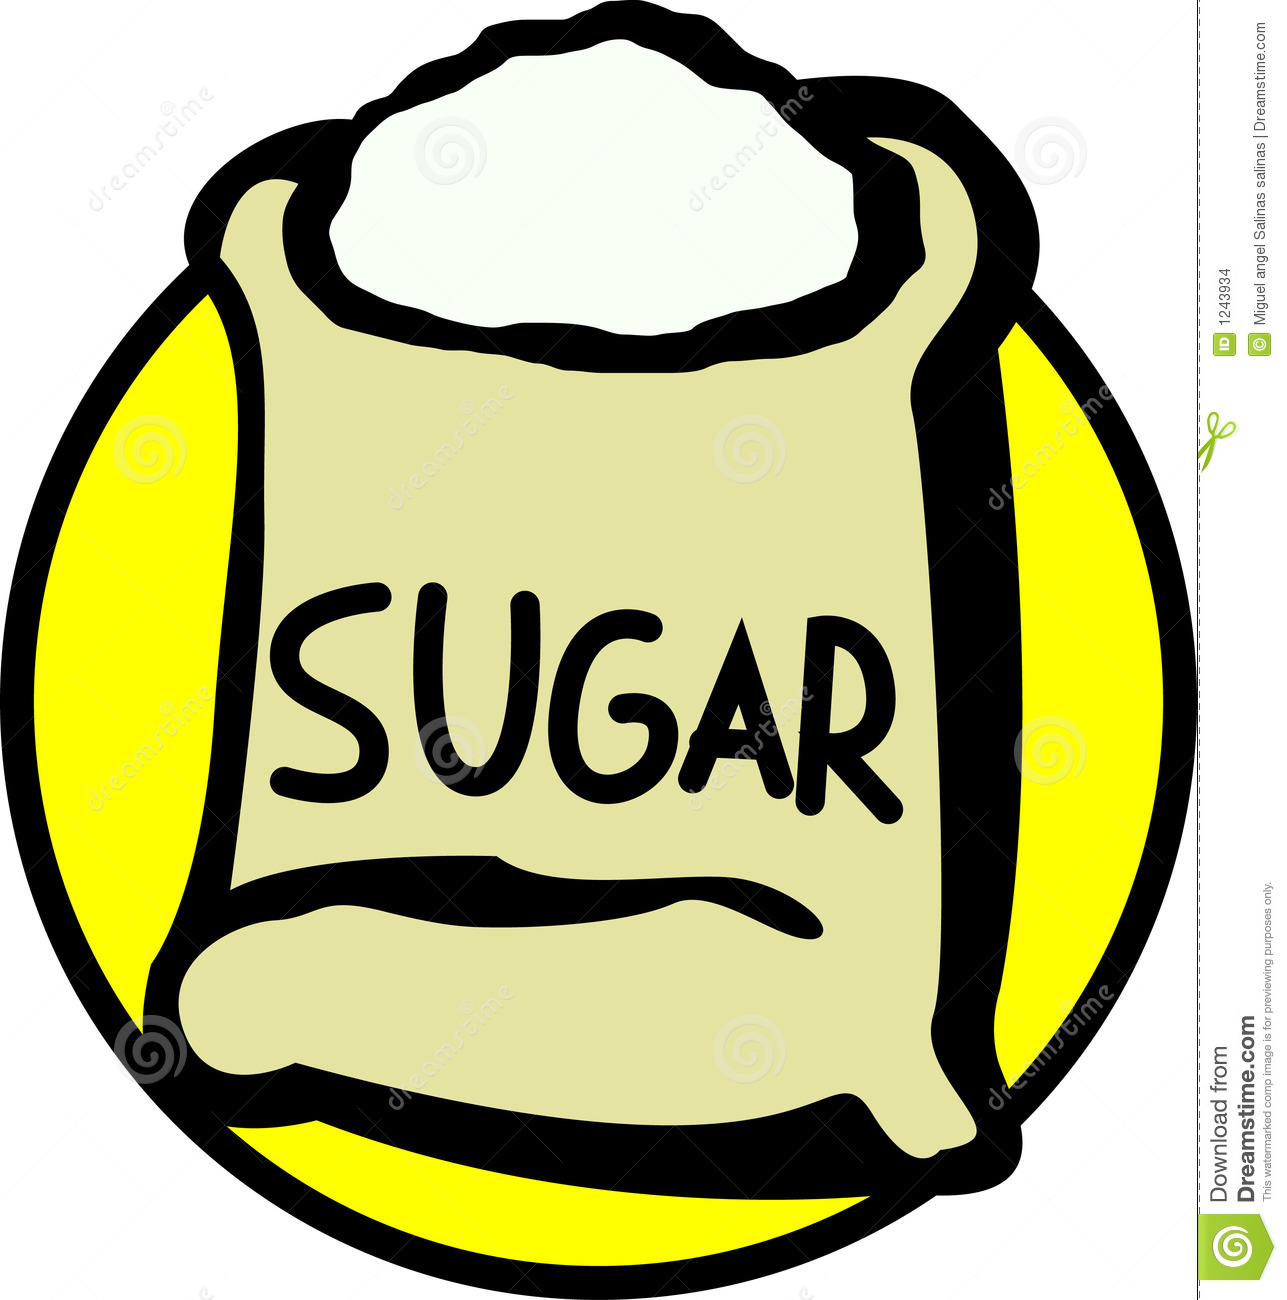 Sugar clipart #12, Download drawings